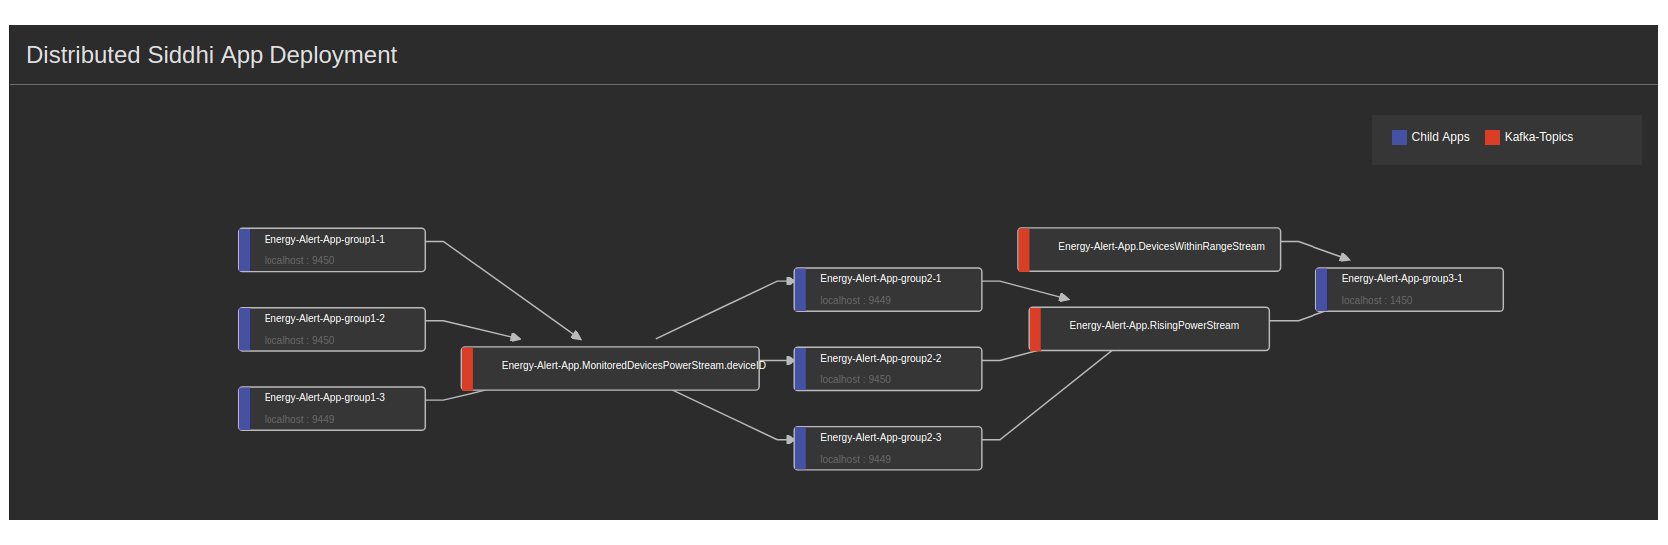 WSO2 Stream Processor Status Dashboard showing the components of the distributed Siddhi application